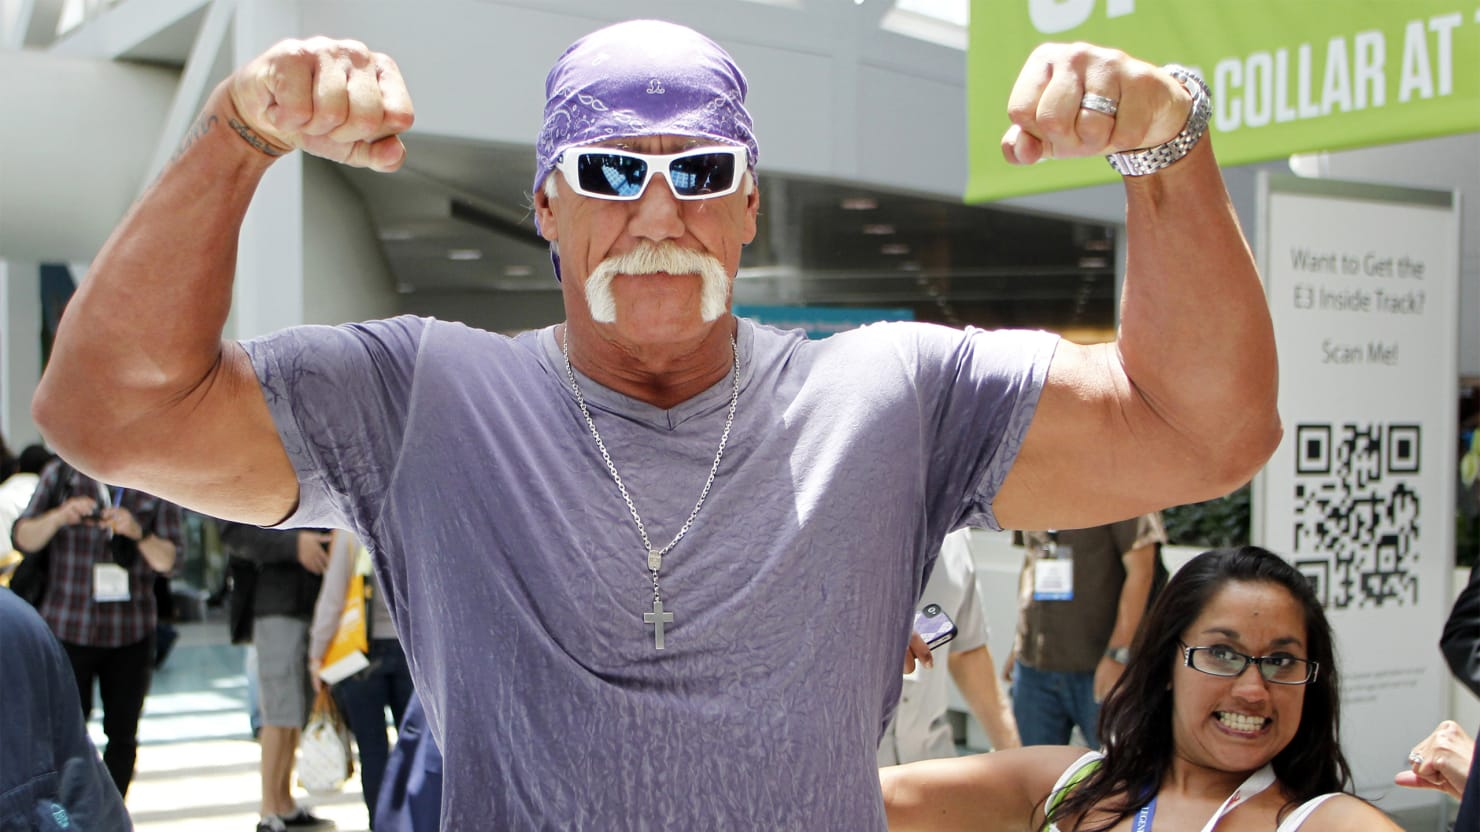 Report: WWE Scrubs All Mentions of Hulk Hogan in Wake of Controversial N-Word Audio